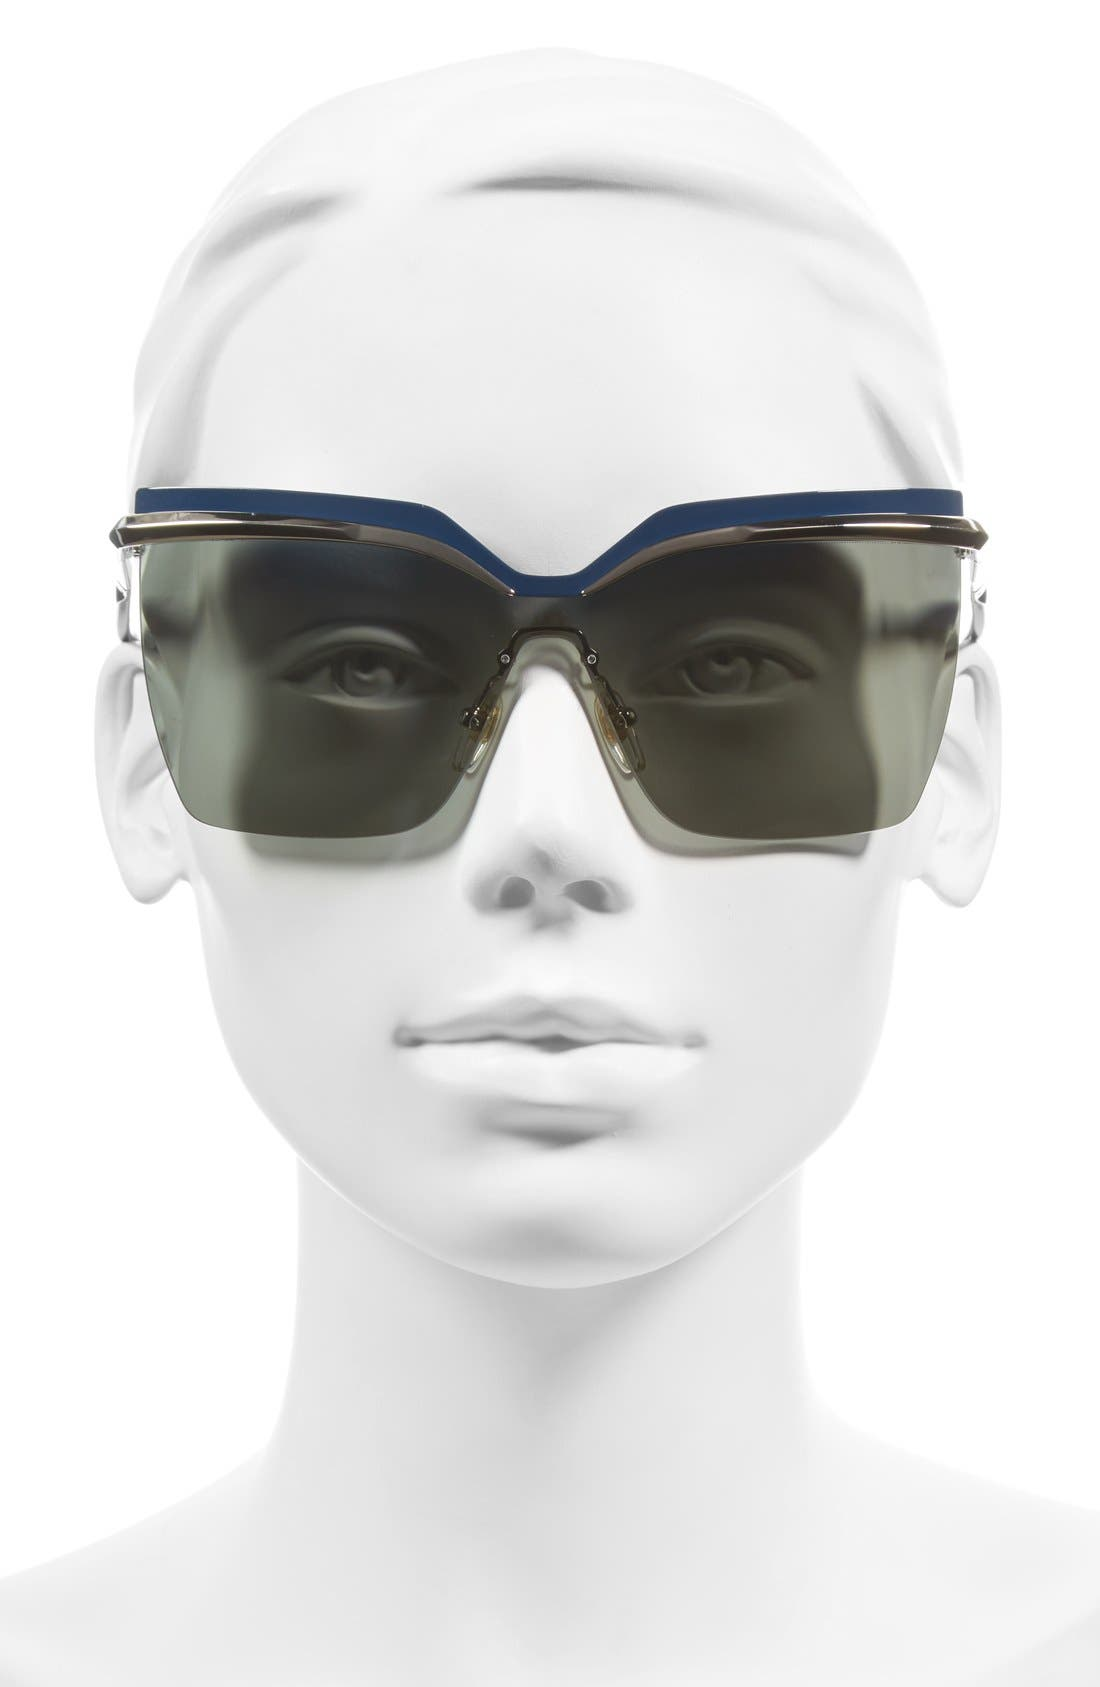 63mm Oversized Sunglasses,                             Alternate thumbnail 2, color,                             Silver